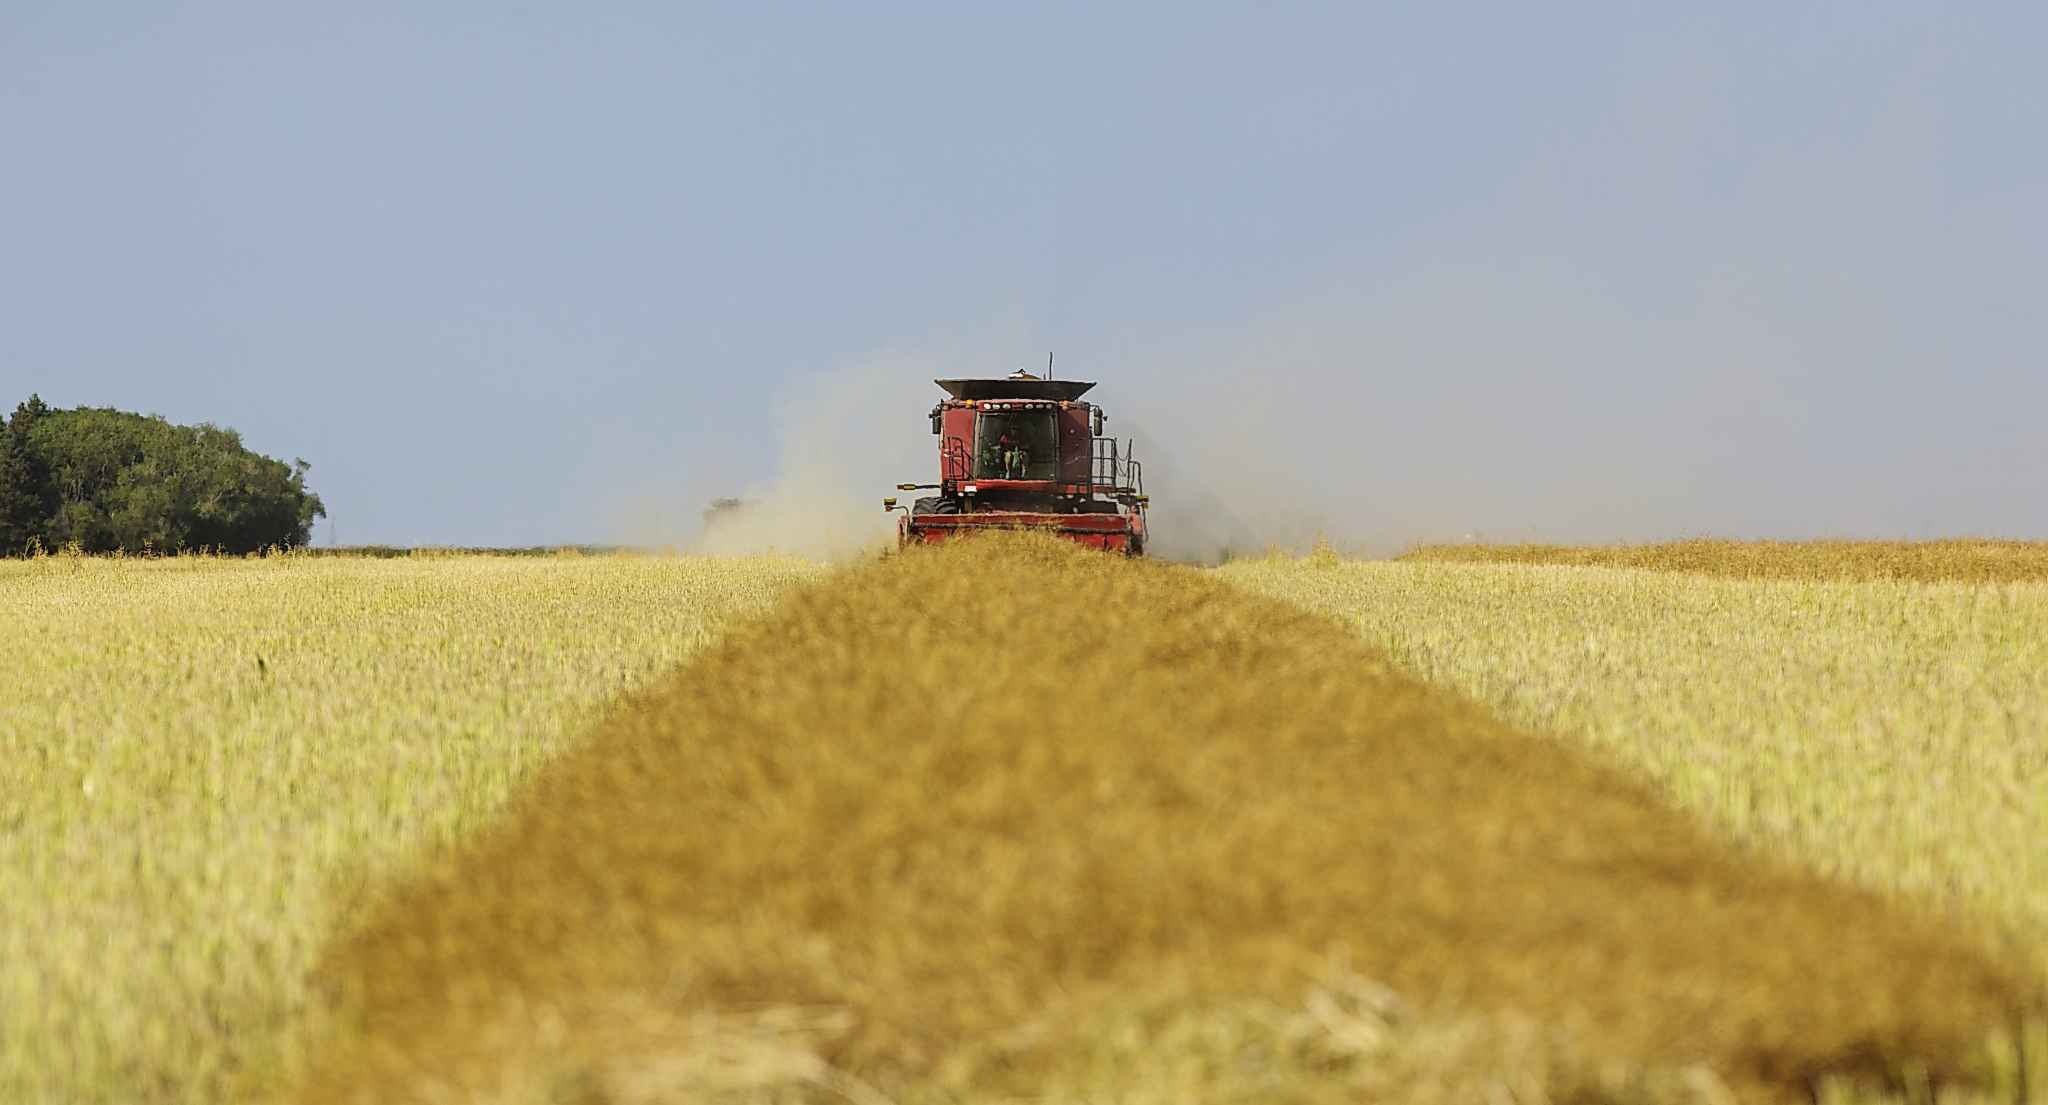 Save for meals or a breakdown, the family's two combines run non-stop until the sun goes down.